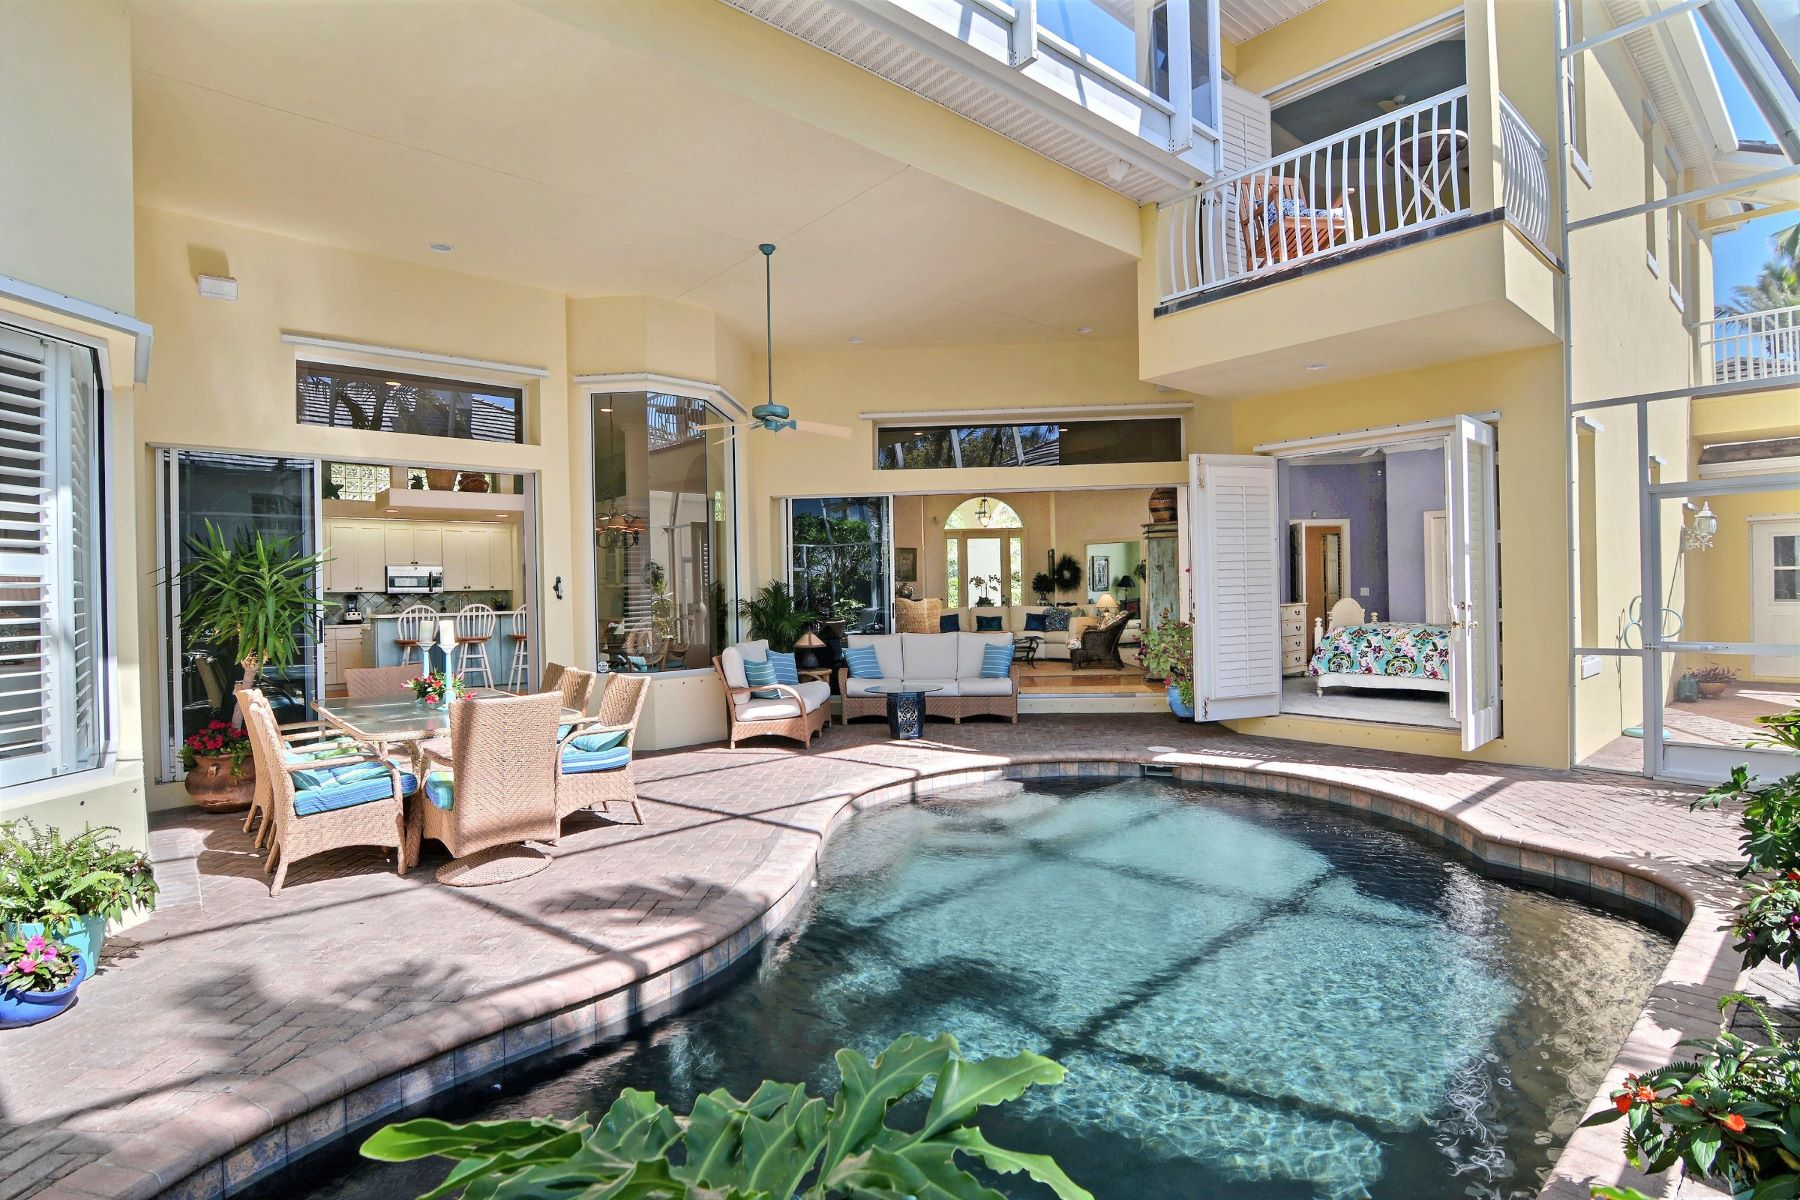 Property for Sale at Beautifully Appointed Pool Home 100 Mariner Beach Lane Vero Beach, Florida 32963 United States